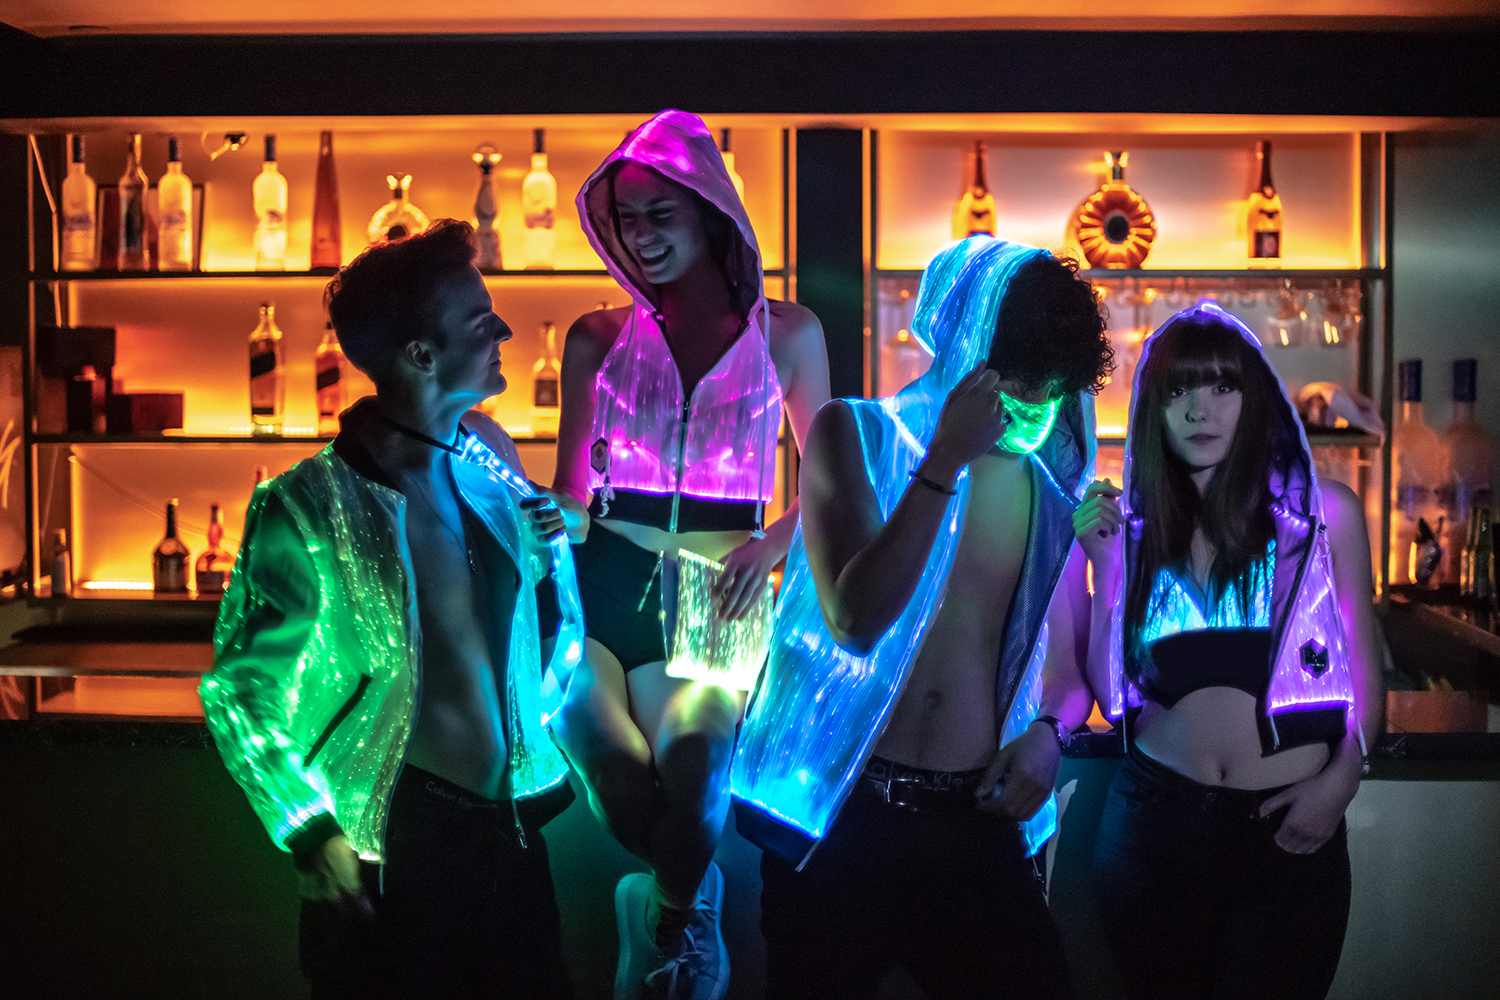 Become The Light Of The Party with Inlighten Fiber Optic Clothing